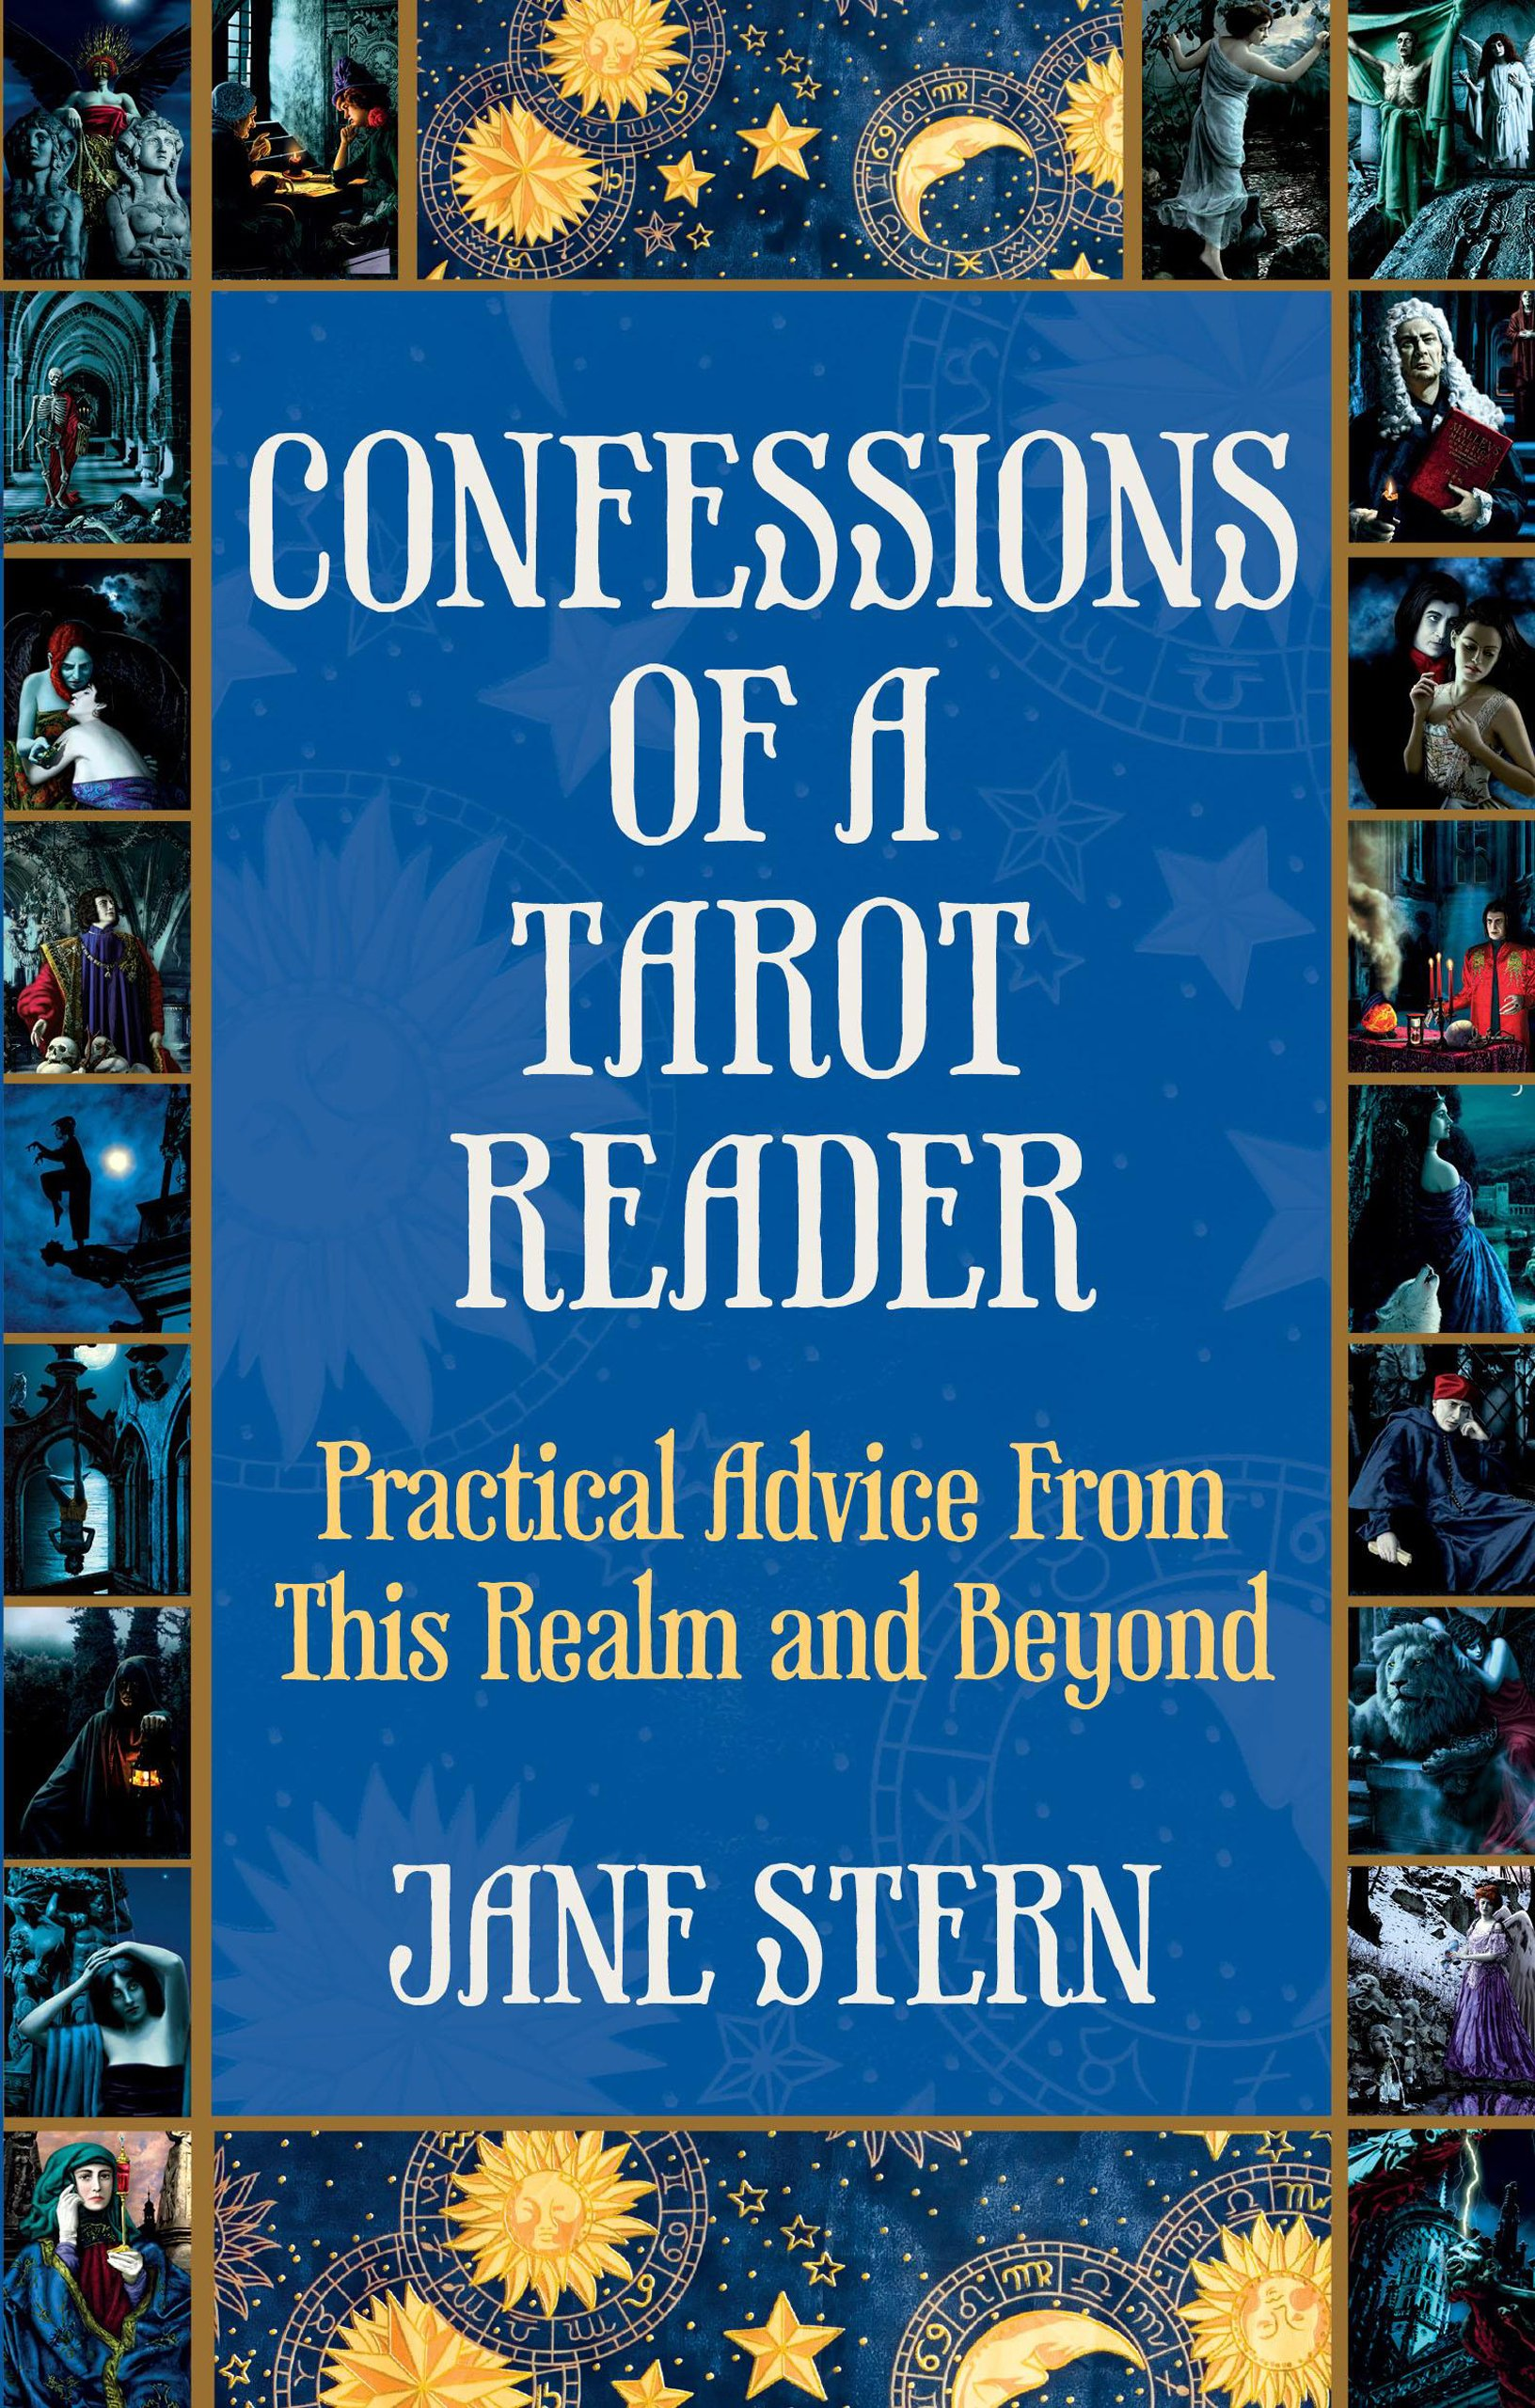 Confessions of a Tarot Reader: Practical Advice From This Realm and Beyond pdf